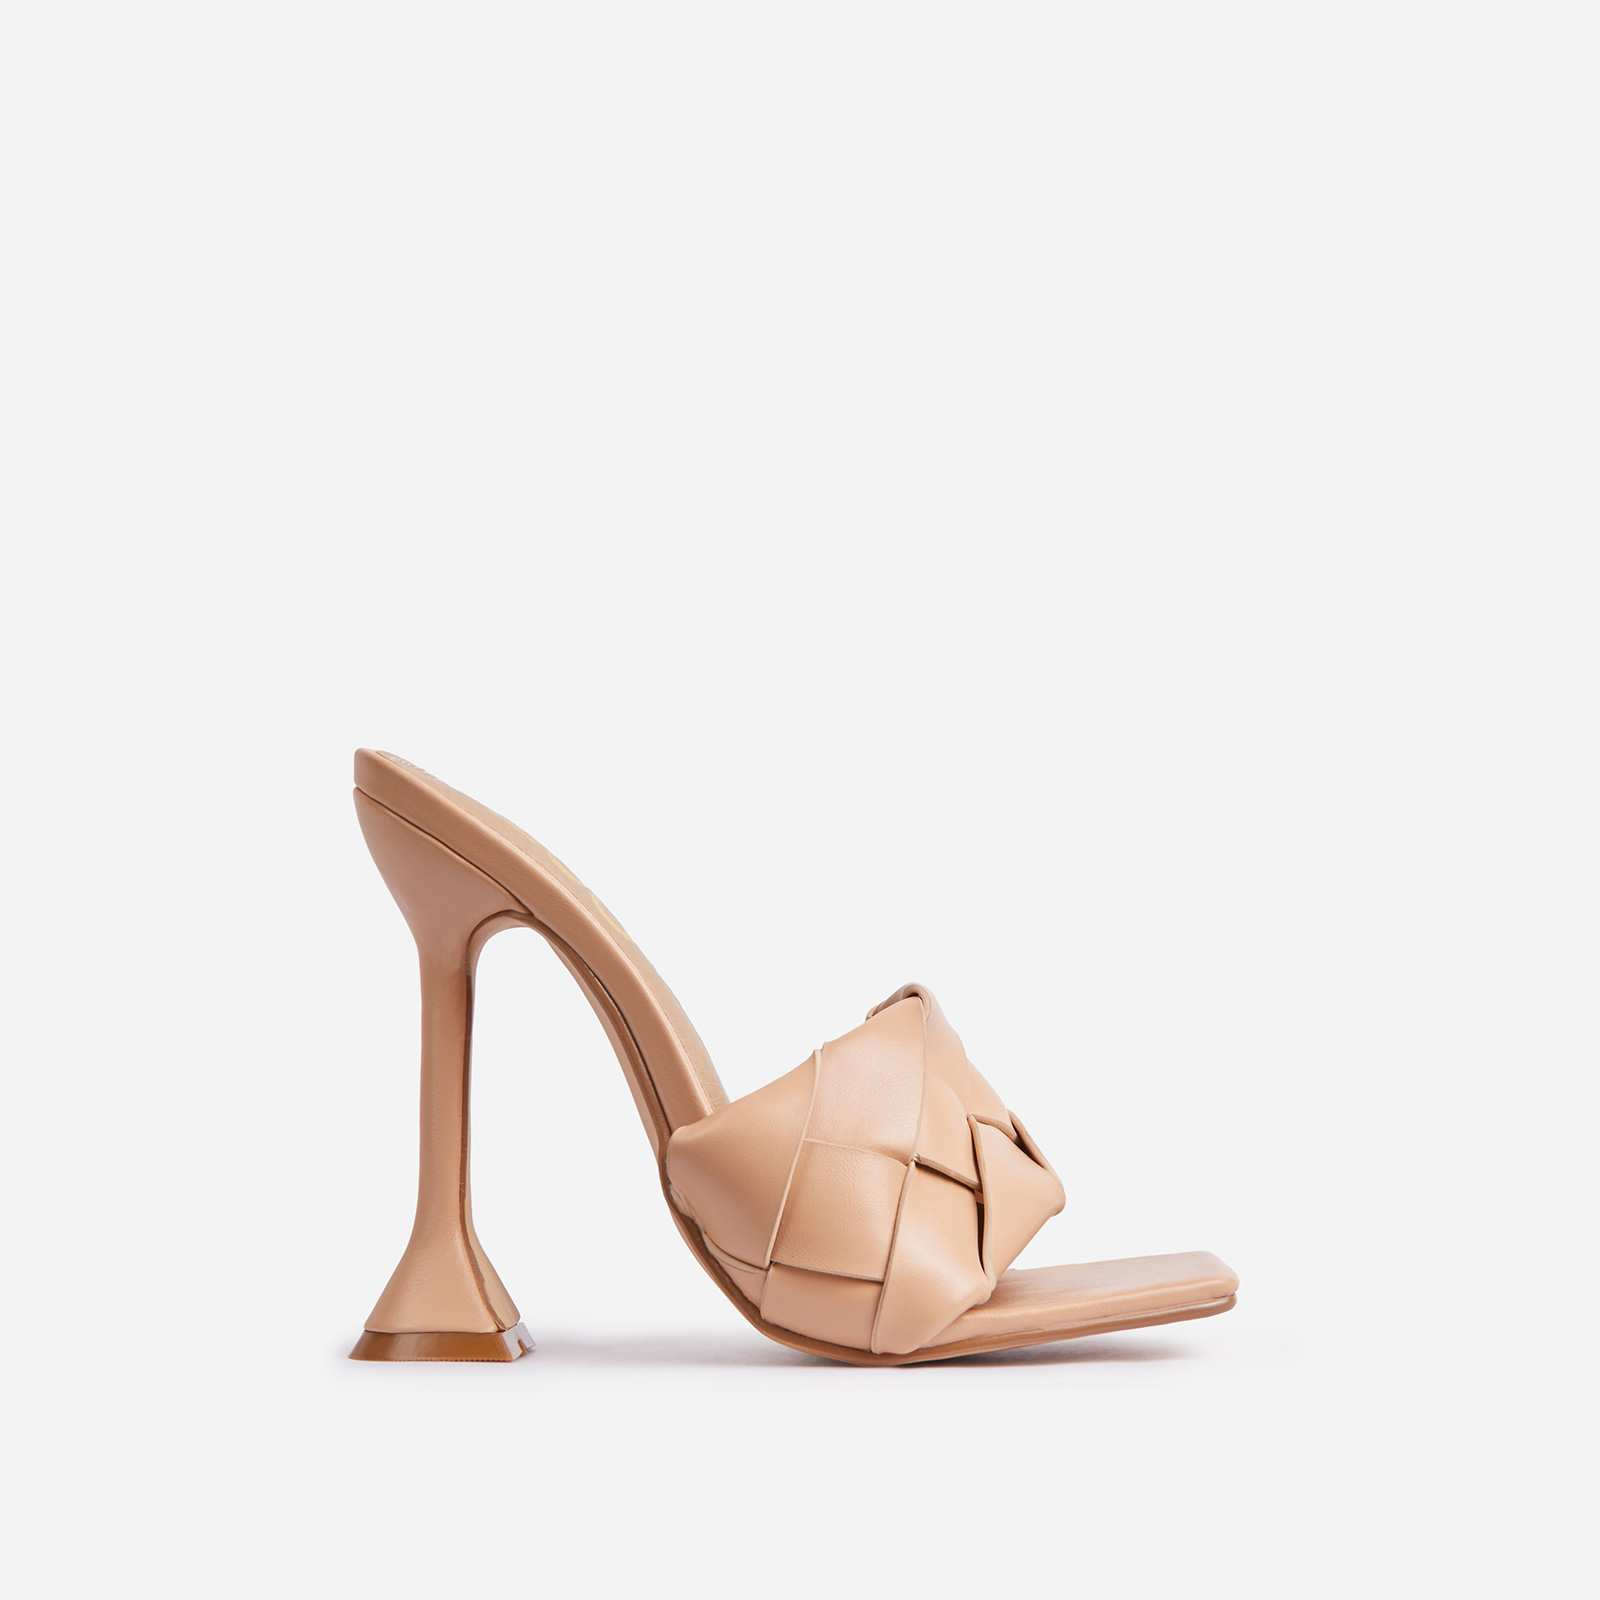 Handled Woven Square Peep Toe Sculptured Heel Mule In Nude Faux Leather